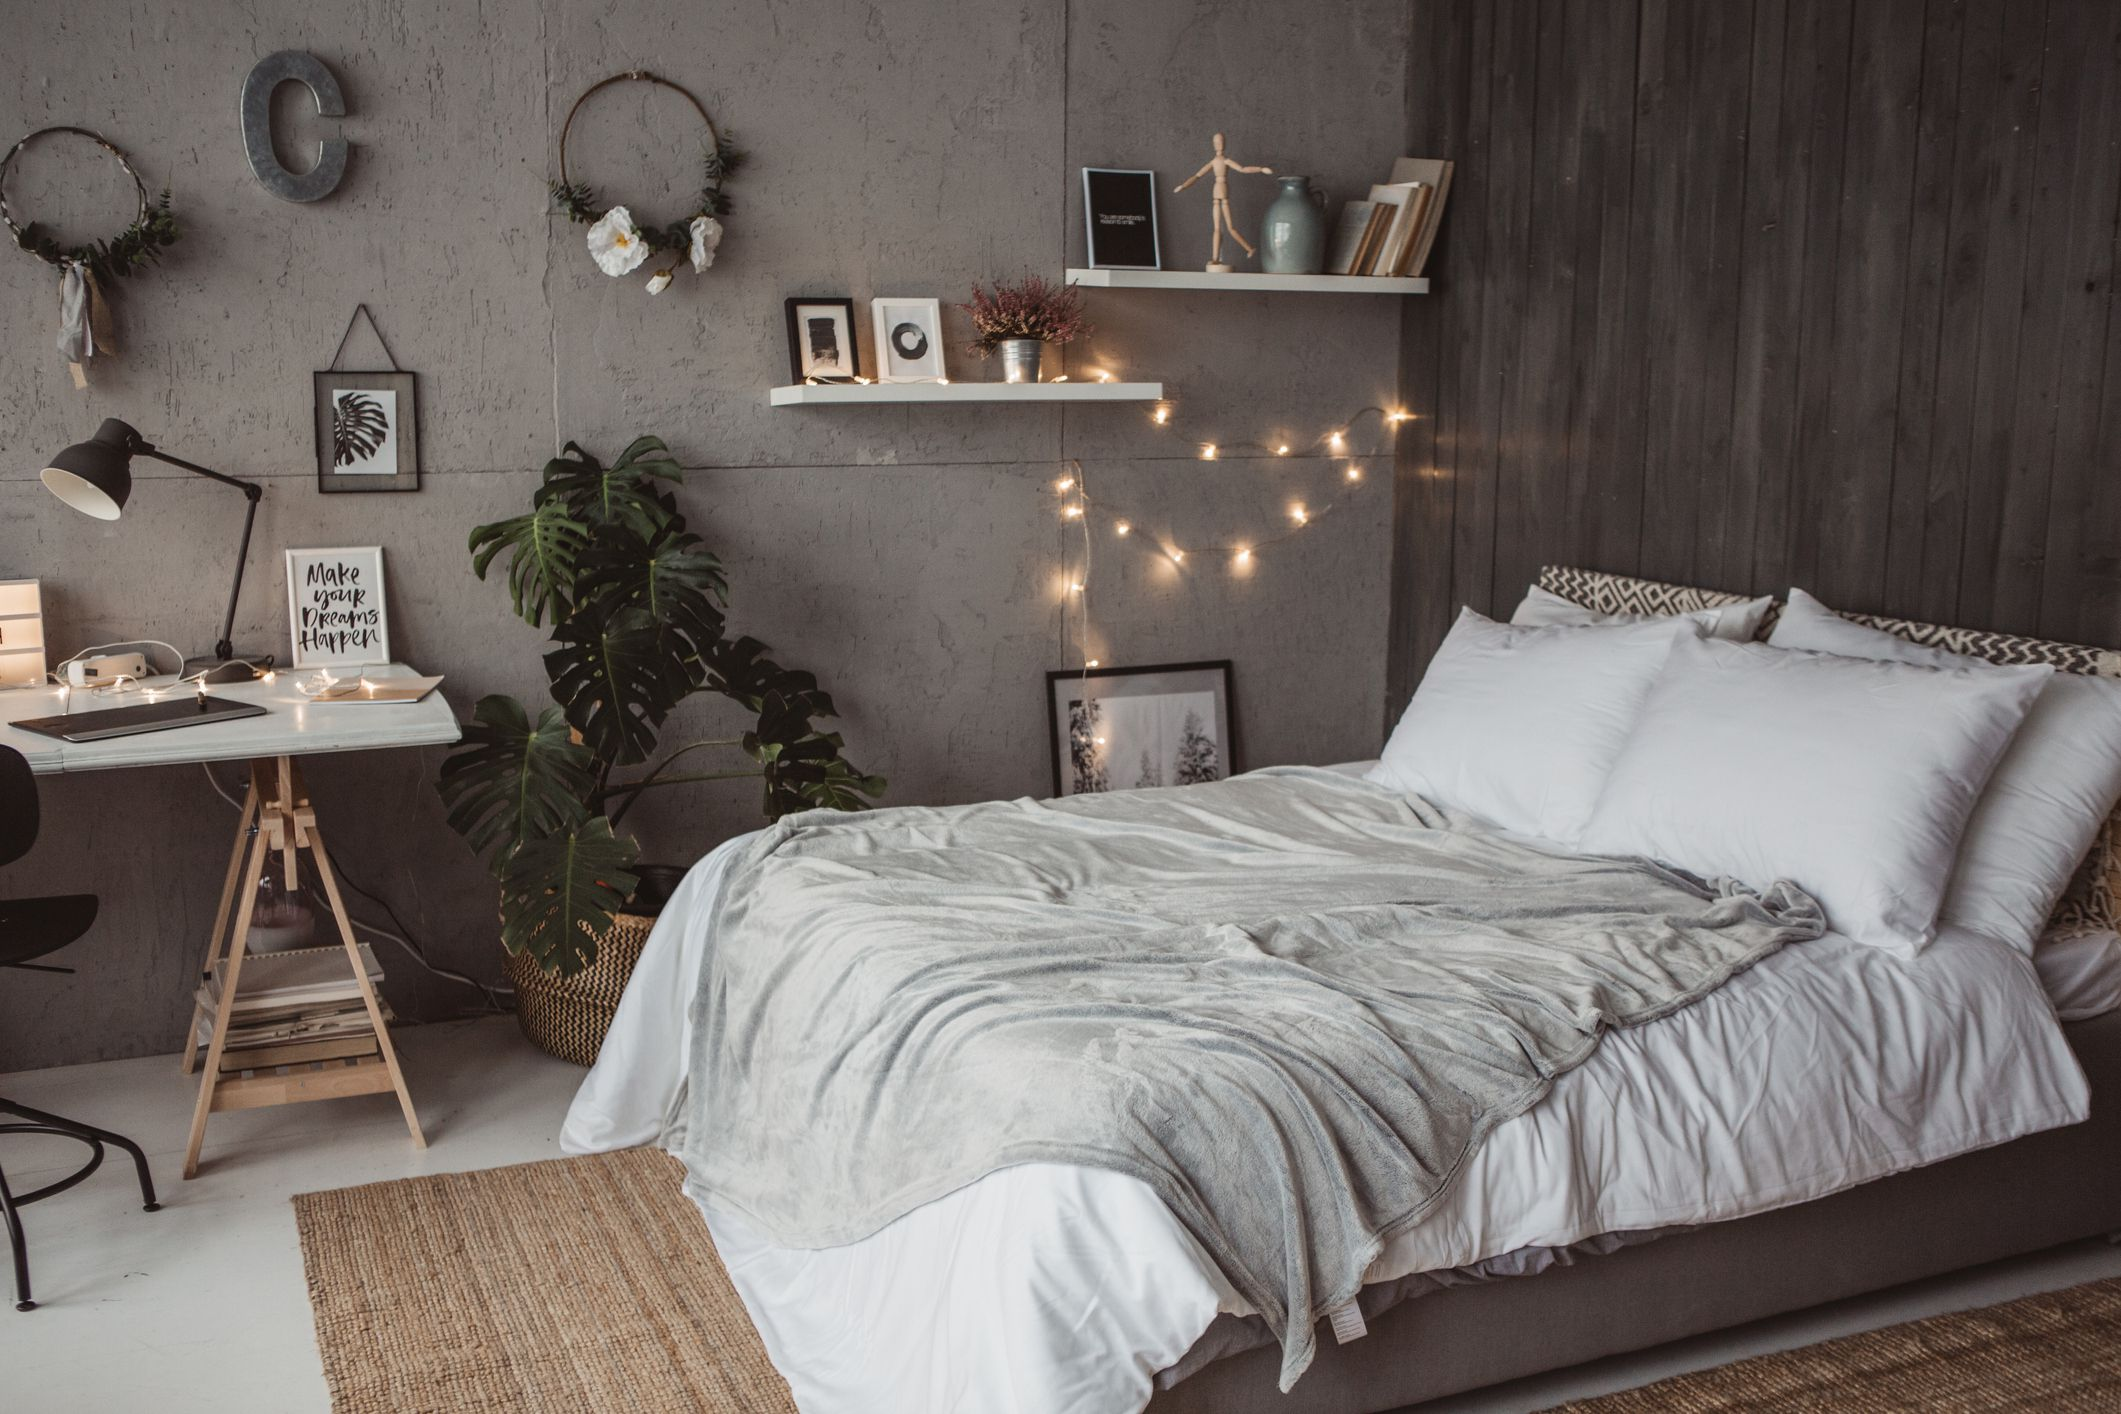 22 Cool Room Ideas for Teens on Teenage Room  id=58772